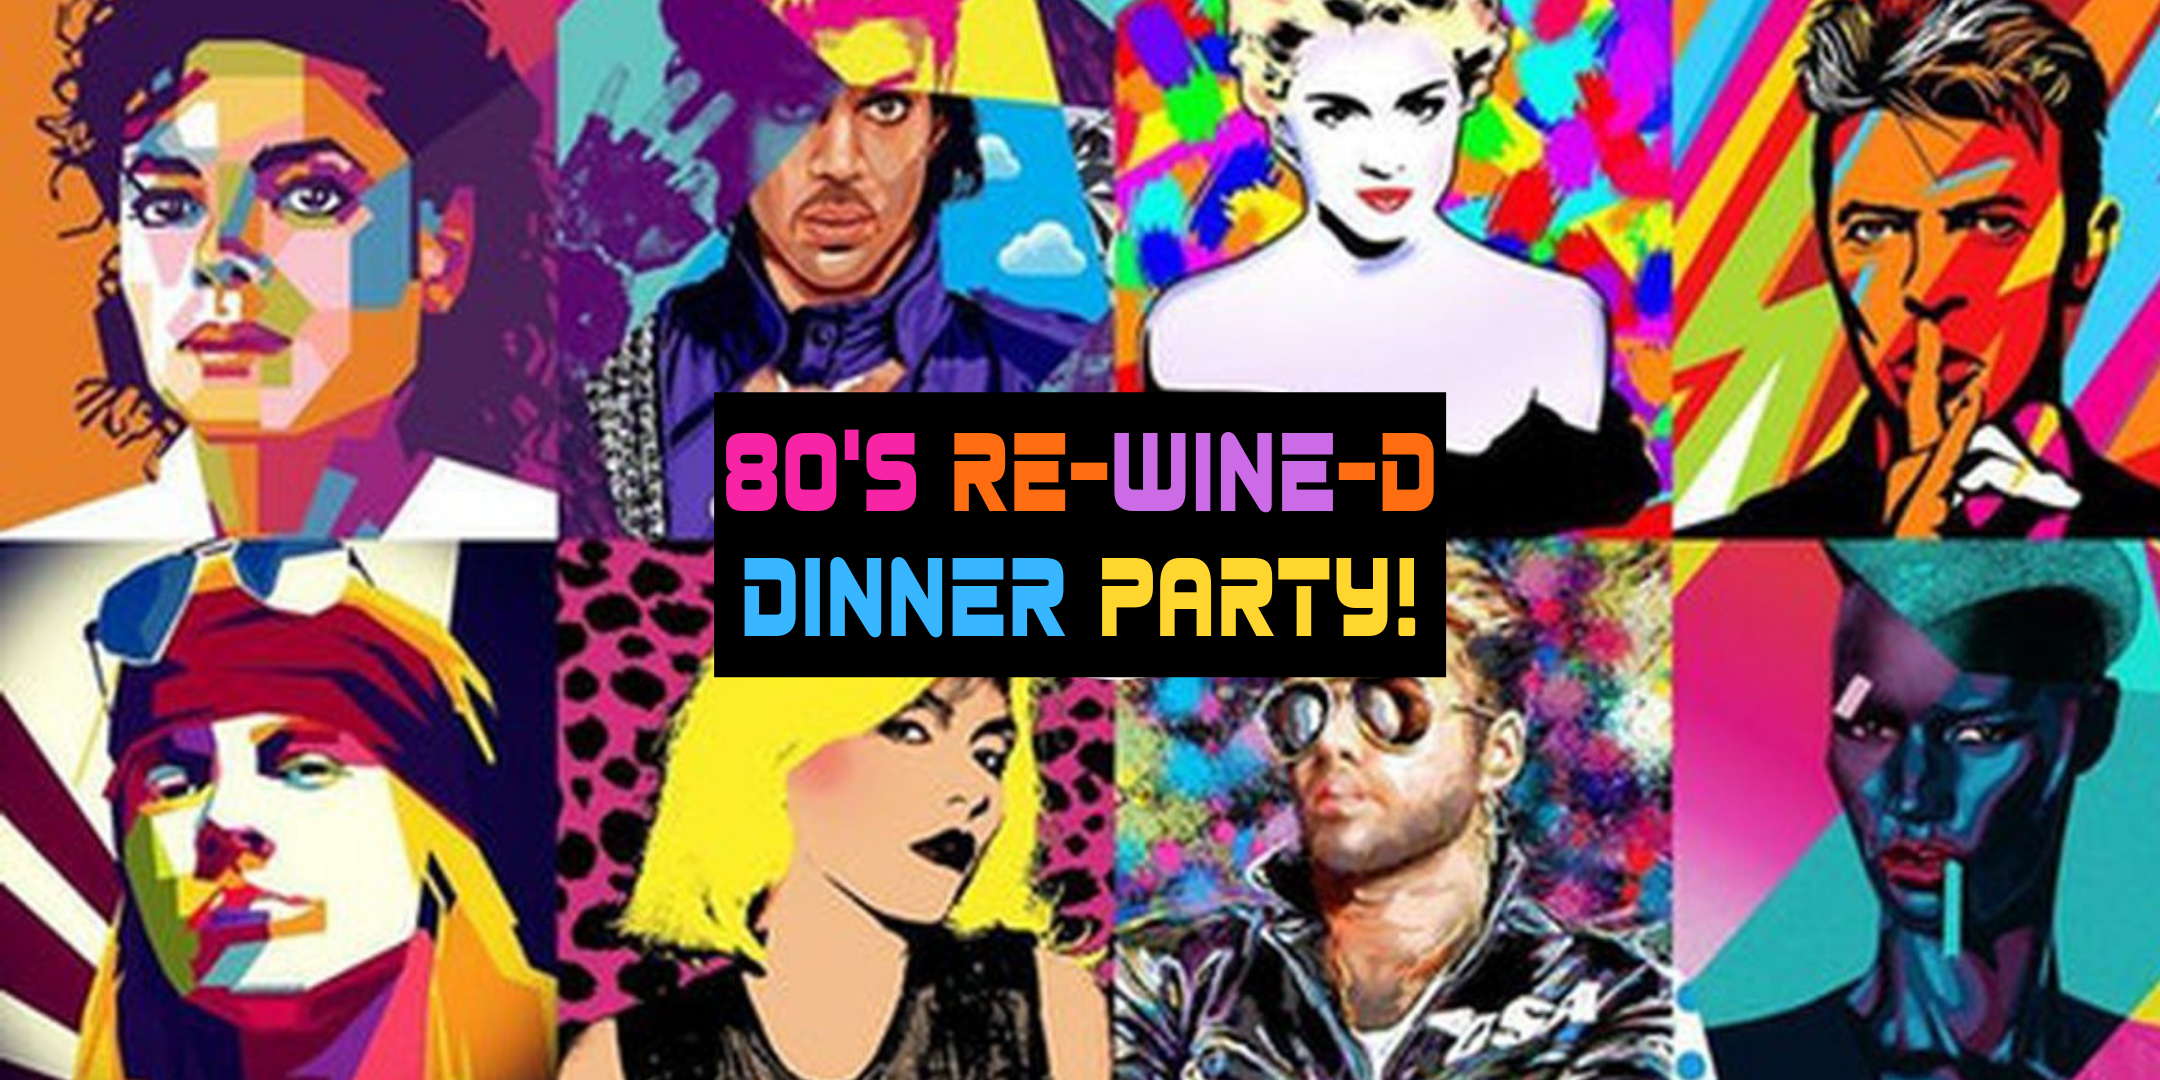 80's Wine Dinner Party! — Rollers Wine & Spirits